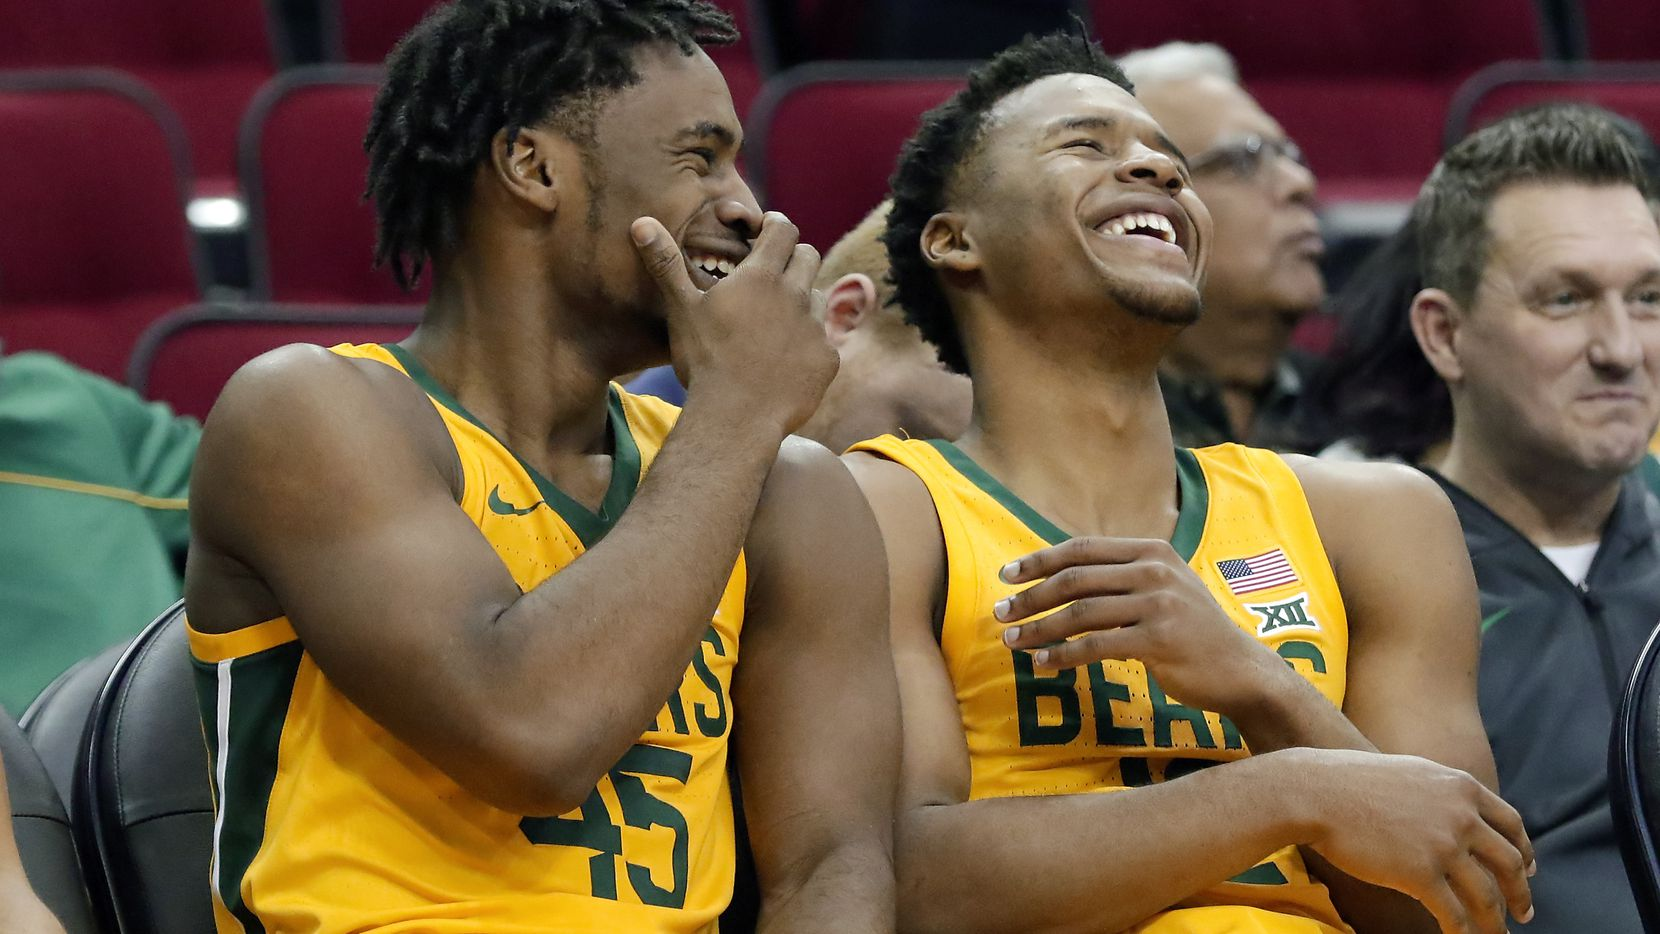 Baylor guard Davion Mitchell (45) and guard Jared Butler (12) laugh on the bench in the final minutes of the team's NCAA college basketball game against Tennessee-Martin Thursday, Dec. 19, 2019, in Houston.